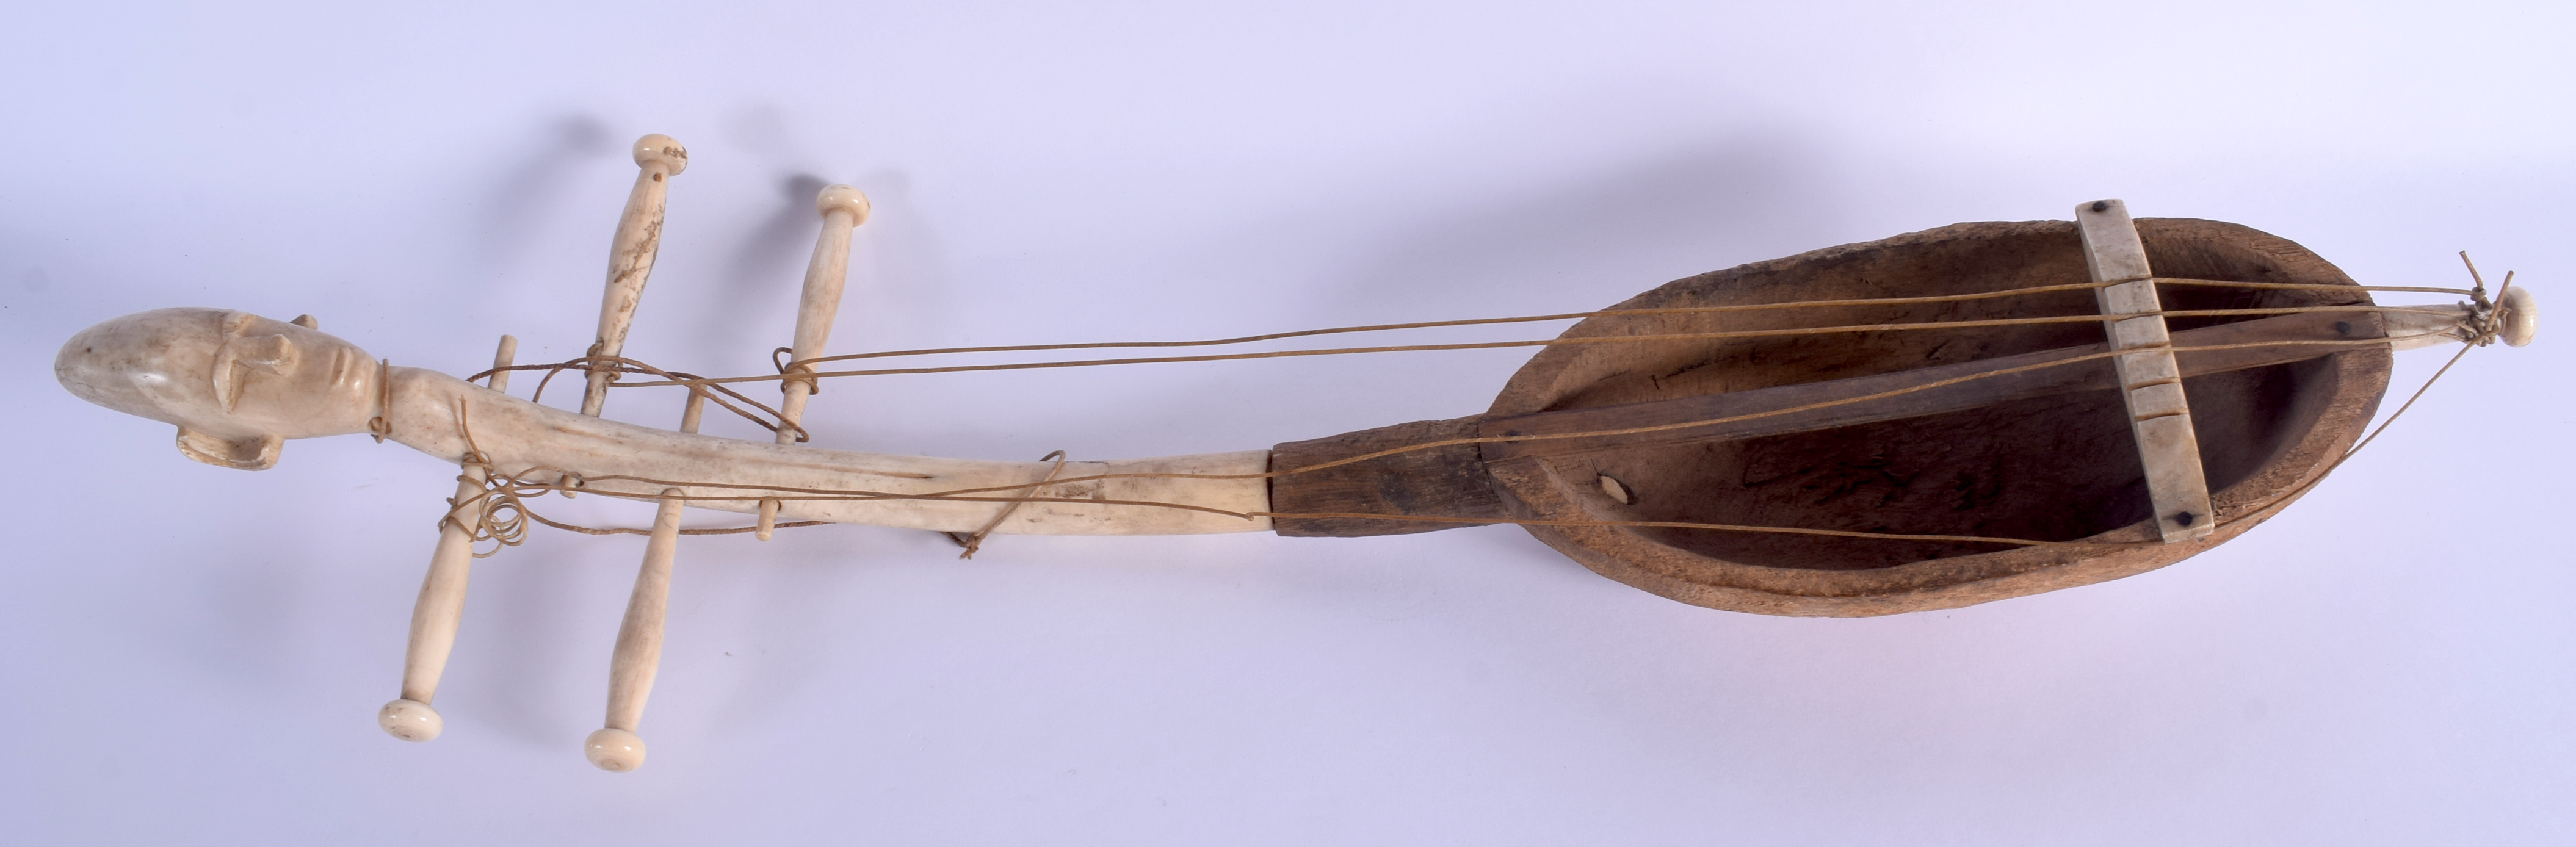 AN EARLY 20TH CENTURY AFRICAN CARVED IVORY AND WOOD INSTRUMENT of figural form. 54 cm long.